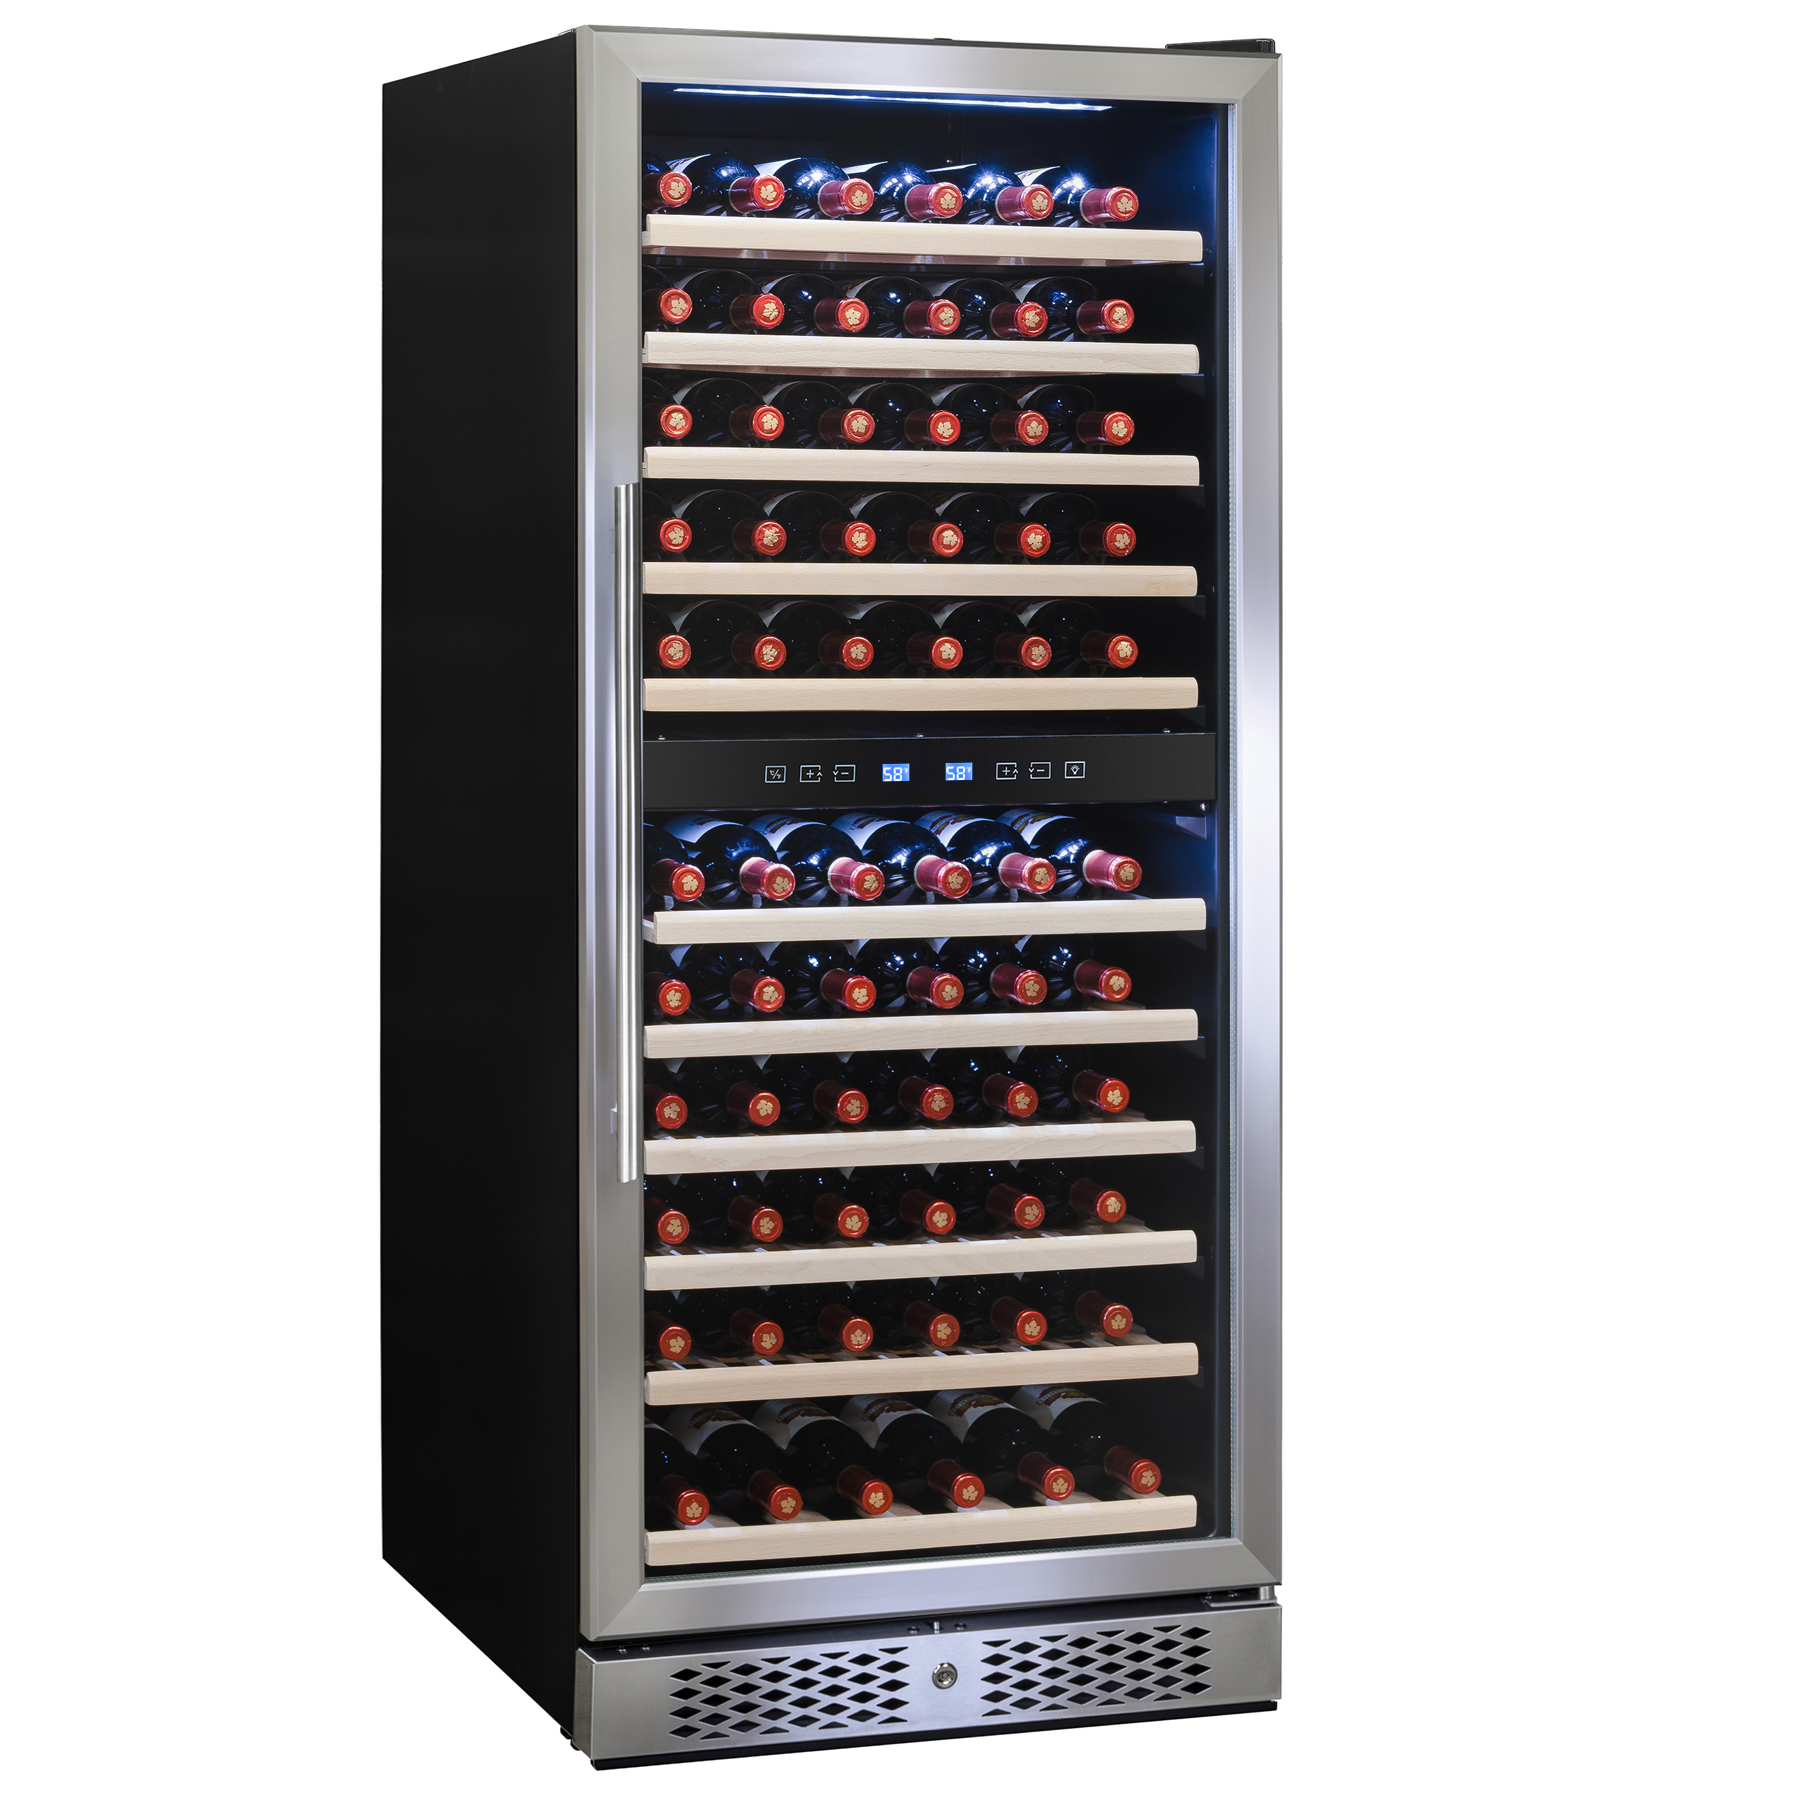 Image of AKDY 116 Bottles Dual Zone Adjustable Built-in Compressor Freestanding Wine Cooler